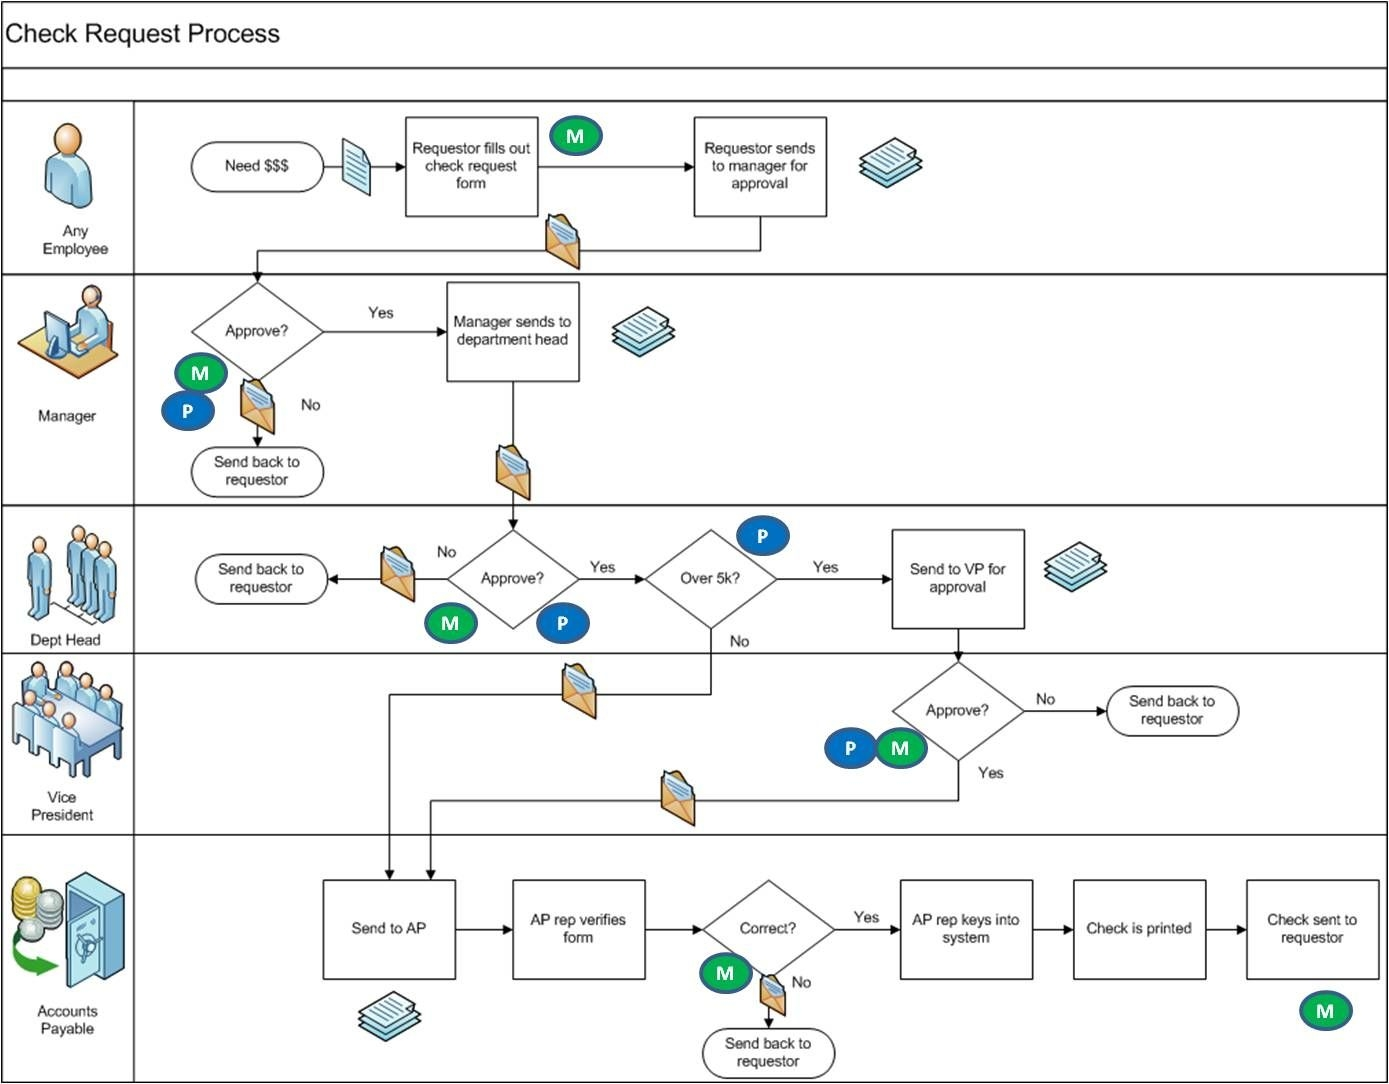 image result for process map visio in 2019 process map accounts payable process map